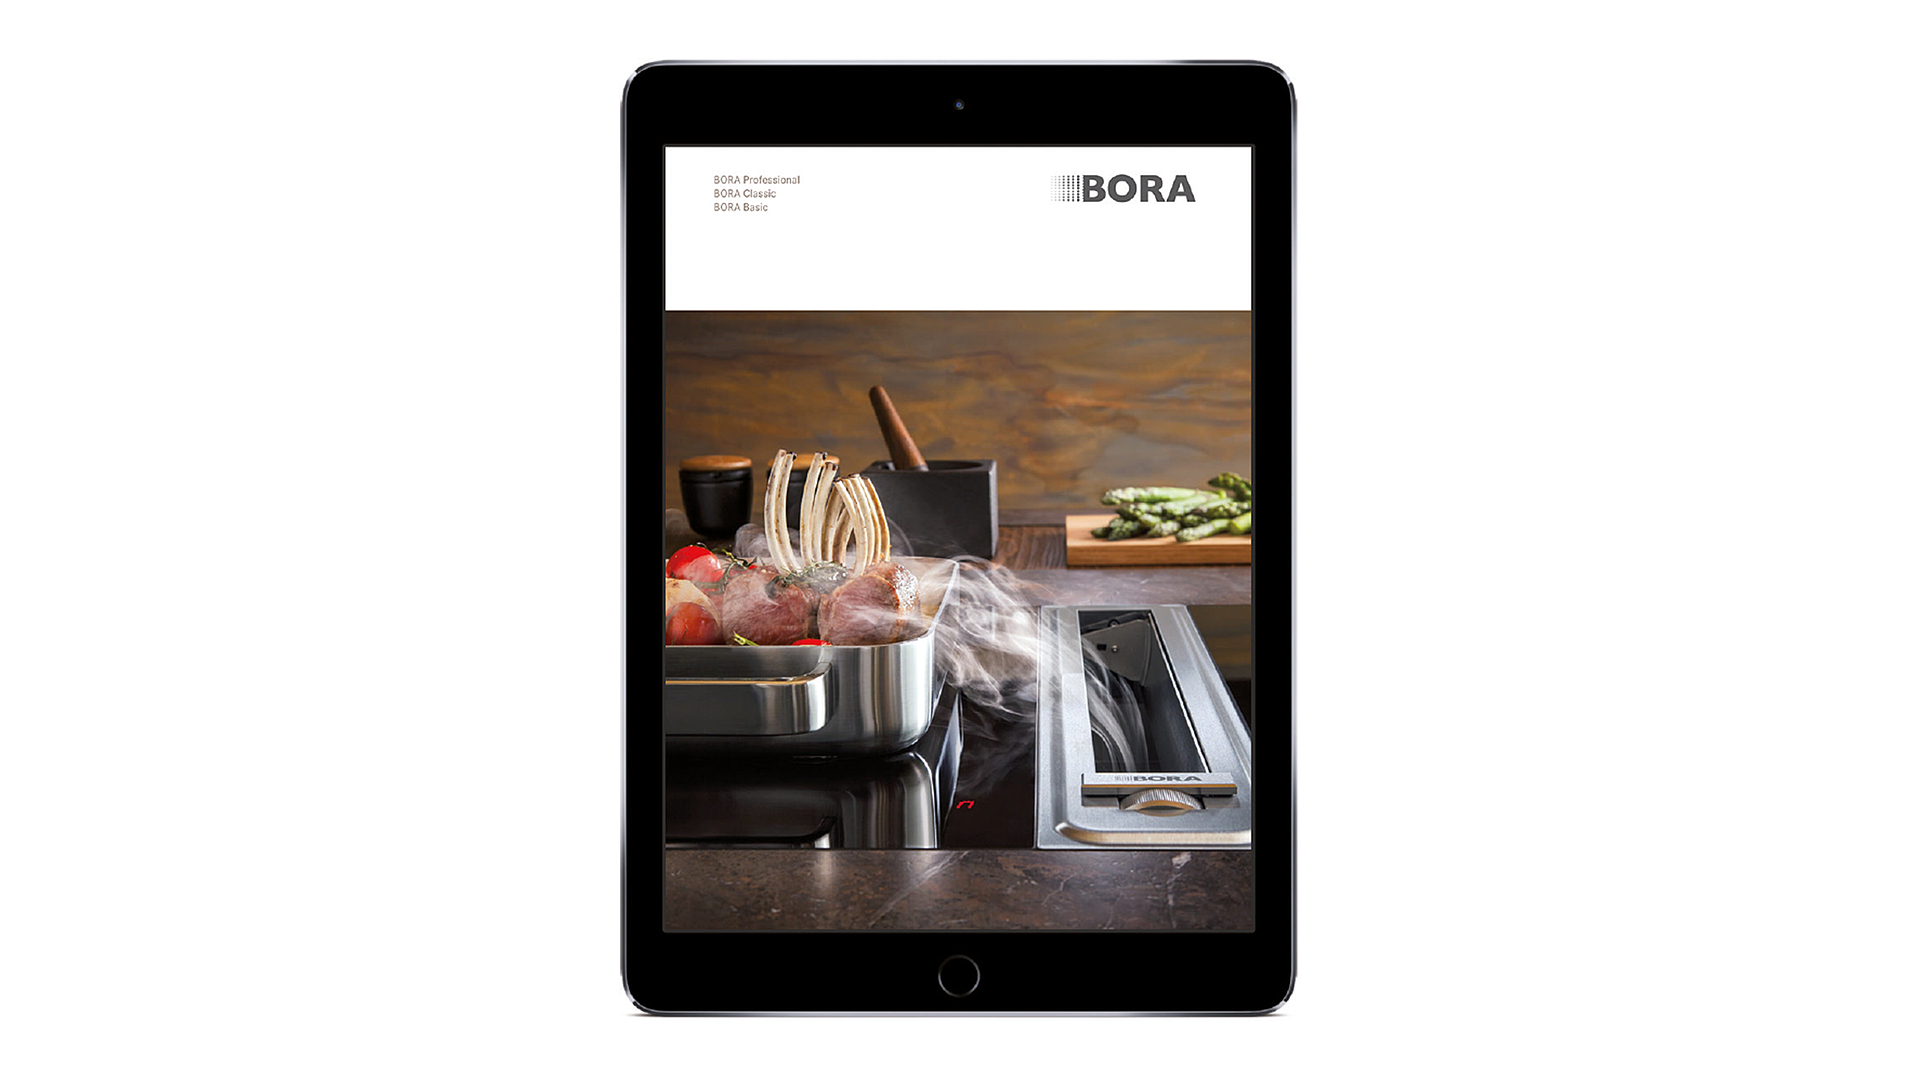 01_BORA App gewinnt Best of Corporate Publishing Preis 2015 in Gold_2015-06 Juni (3).jpg